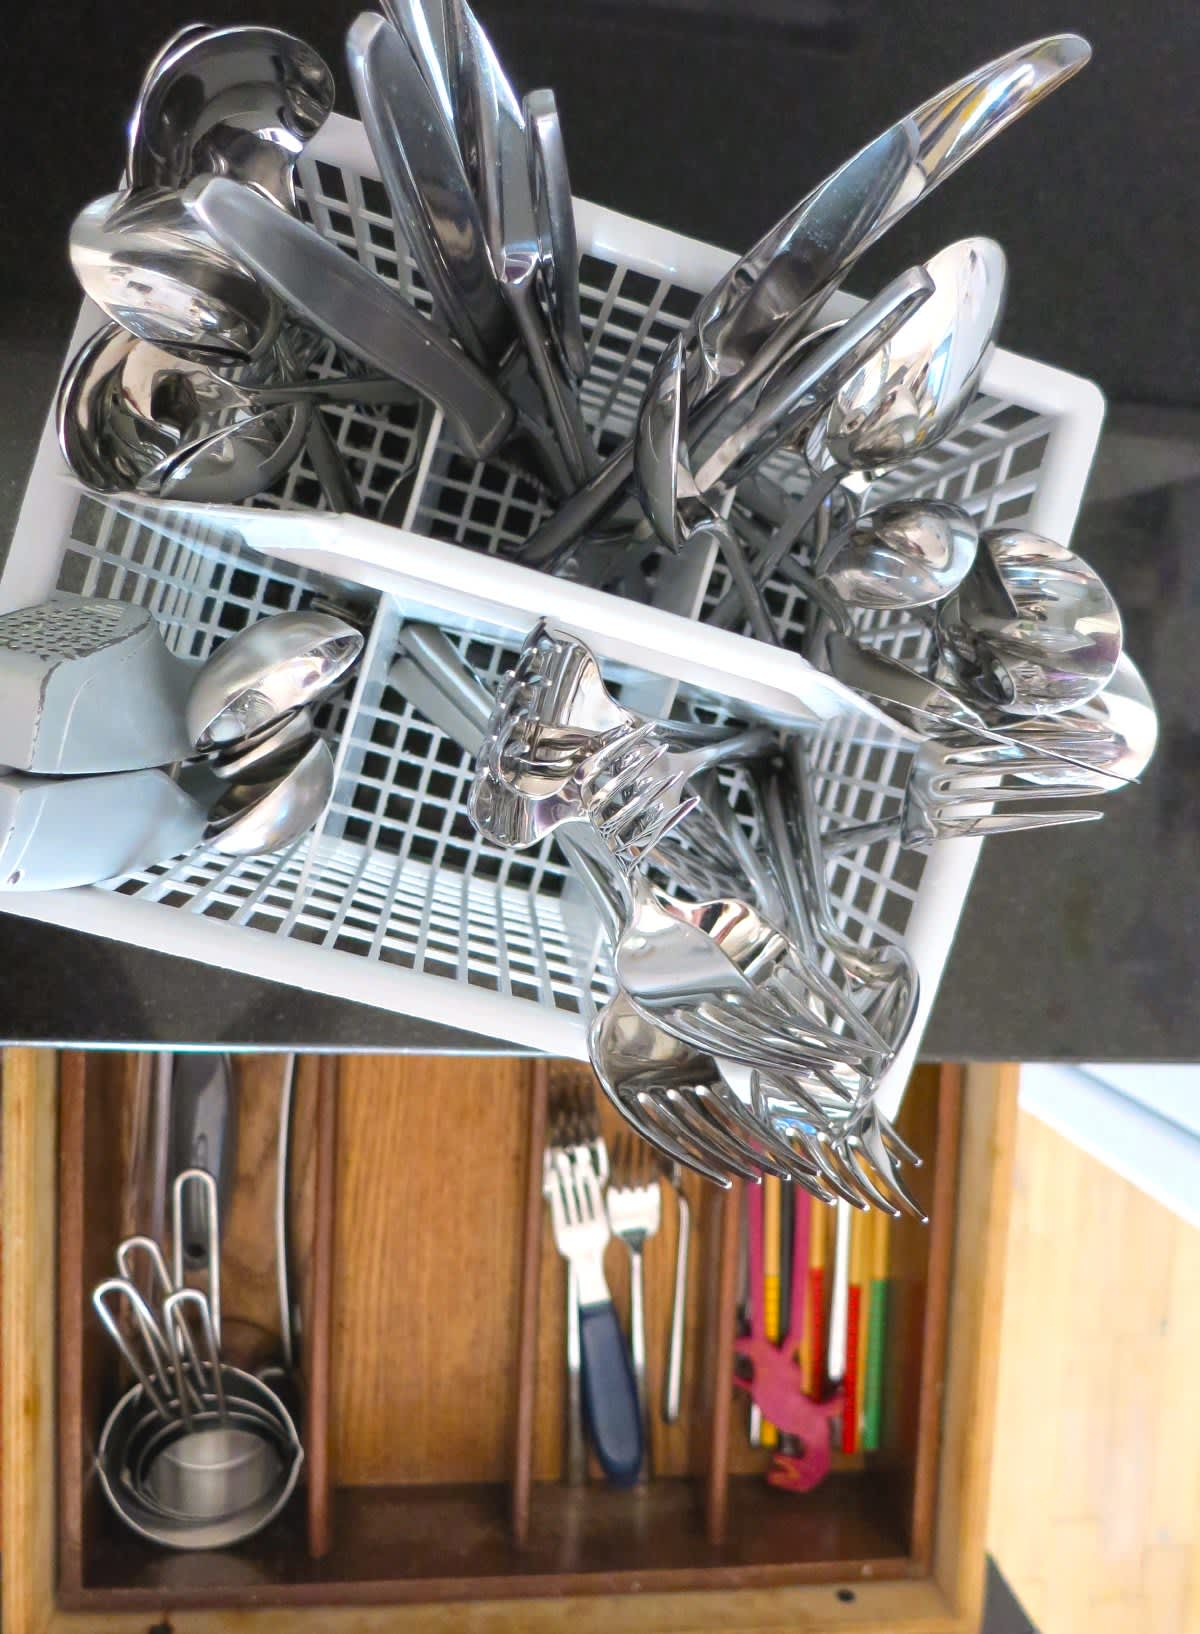 One Small Step to Make it Easier to Unload Utensils from the Dishwasher